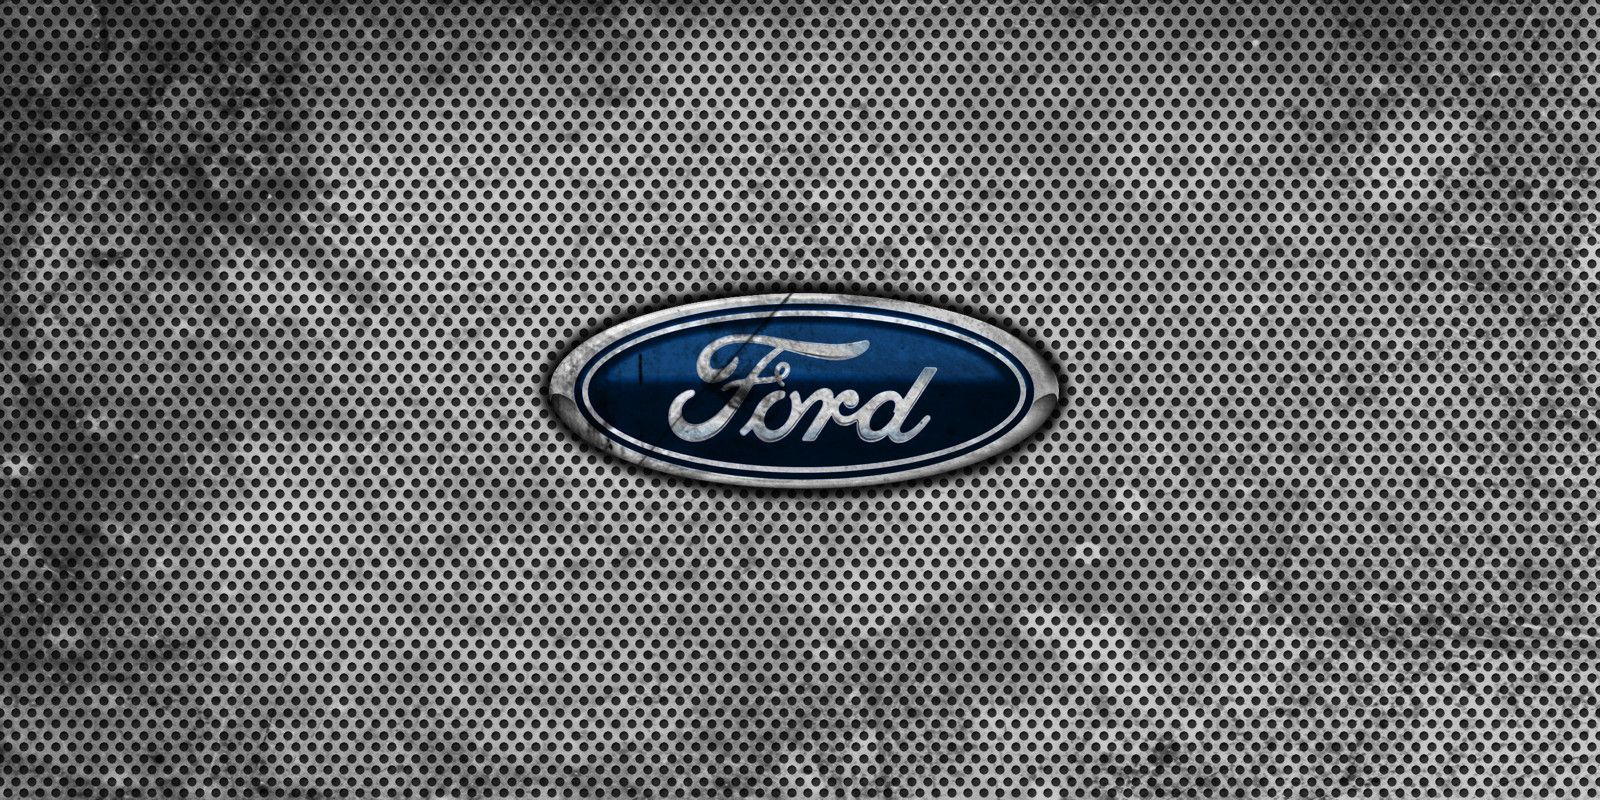 Ford wallpaper hd 1600x800